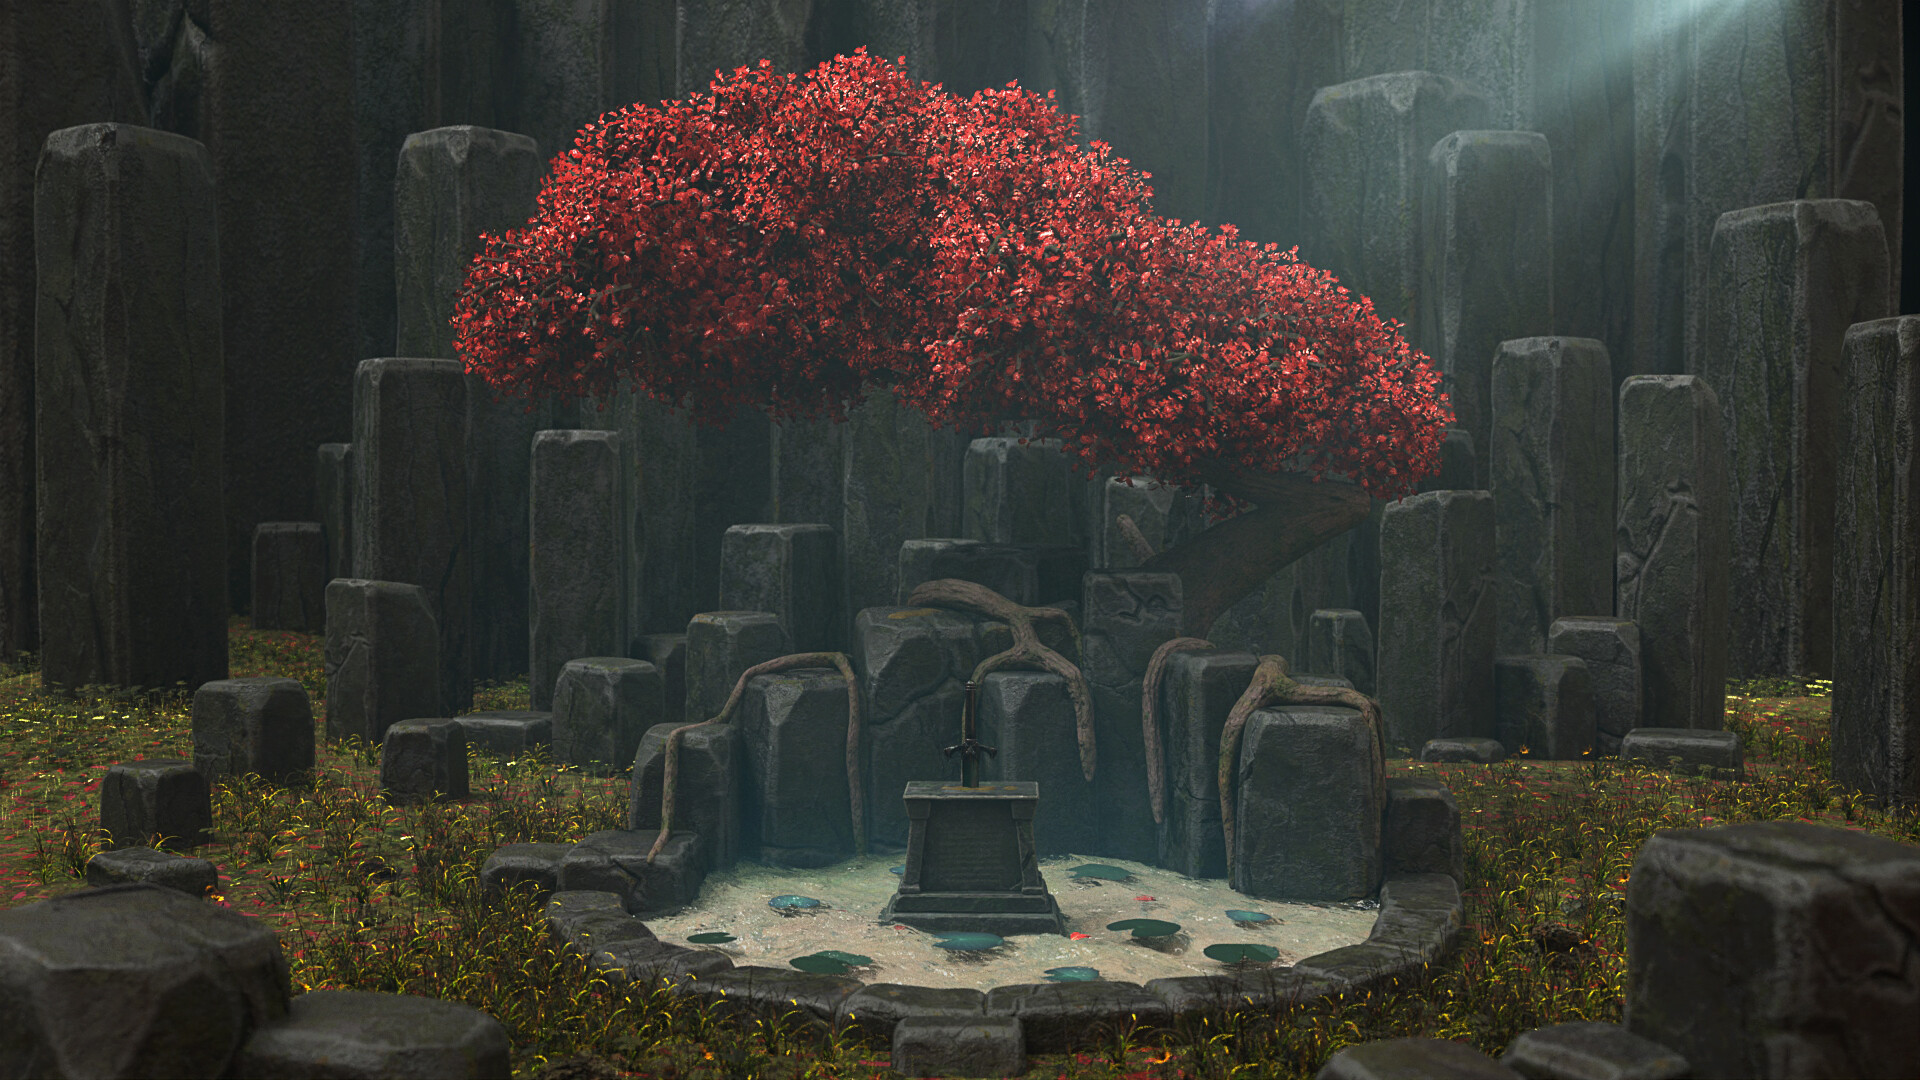 Chien jarvis sword stone beauty chien jarvis